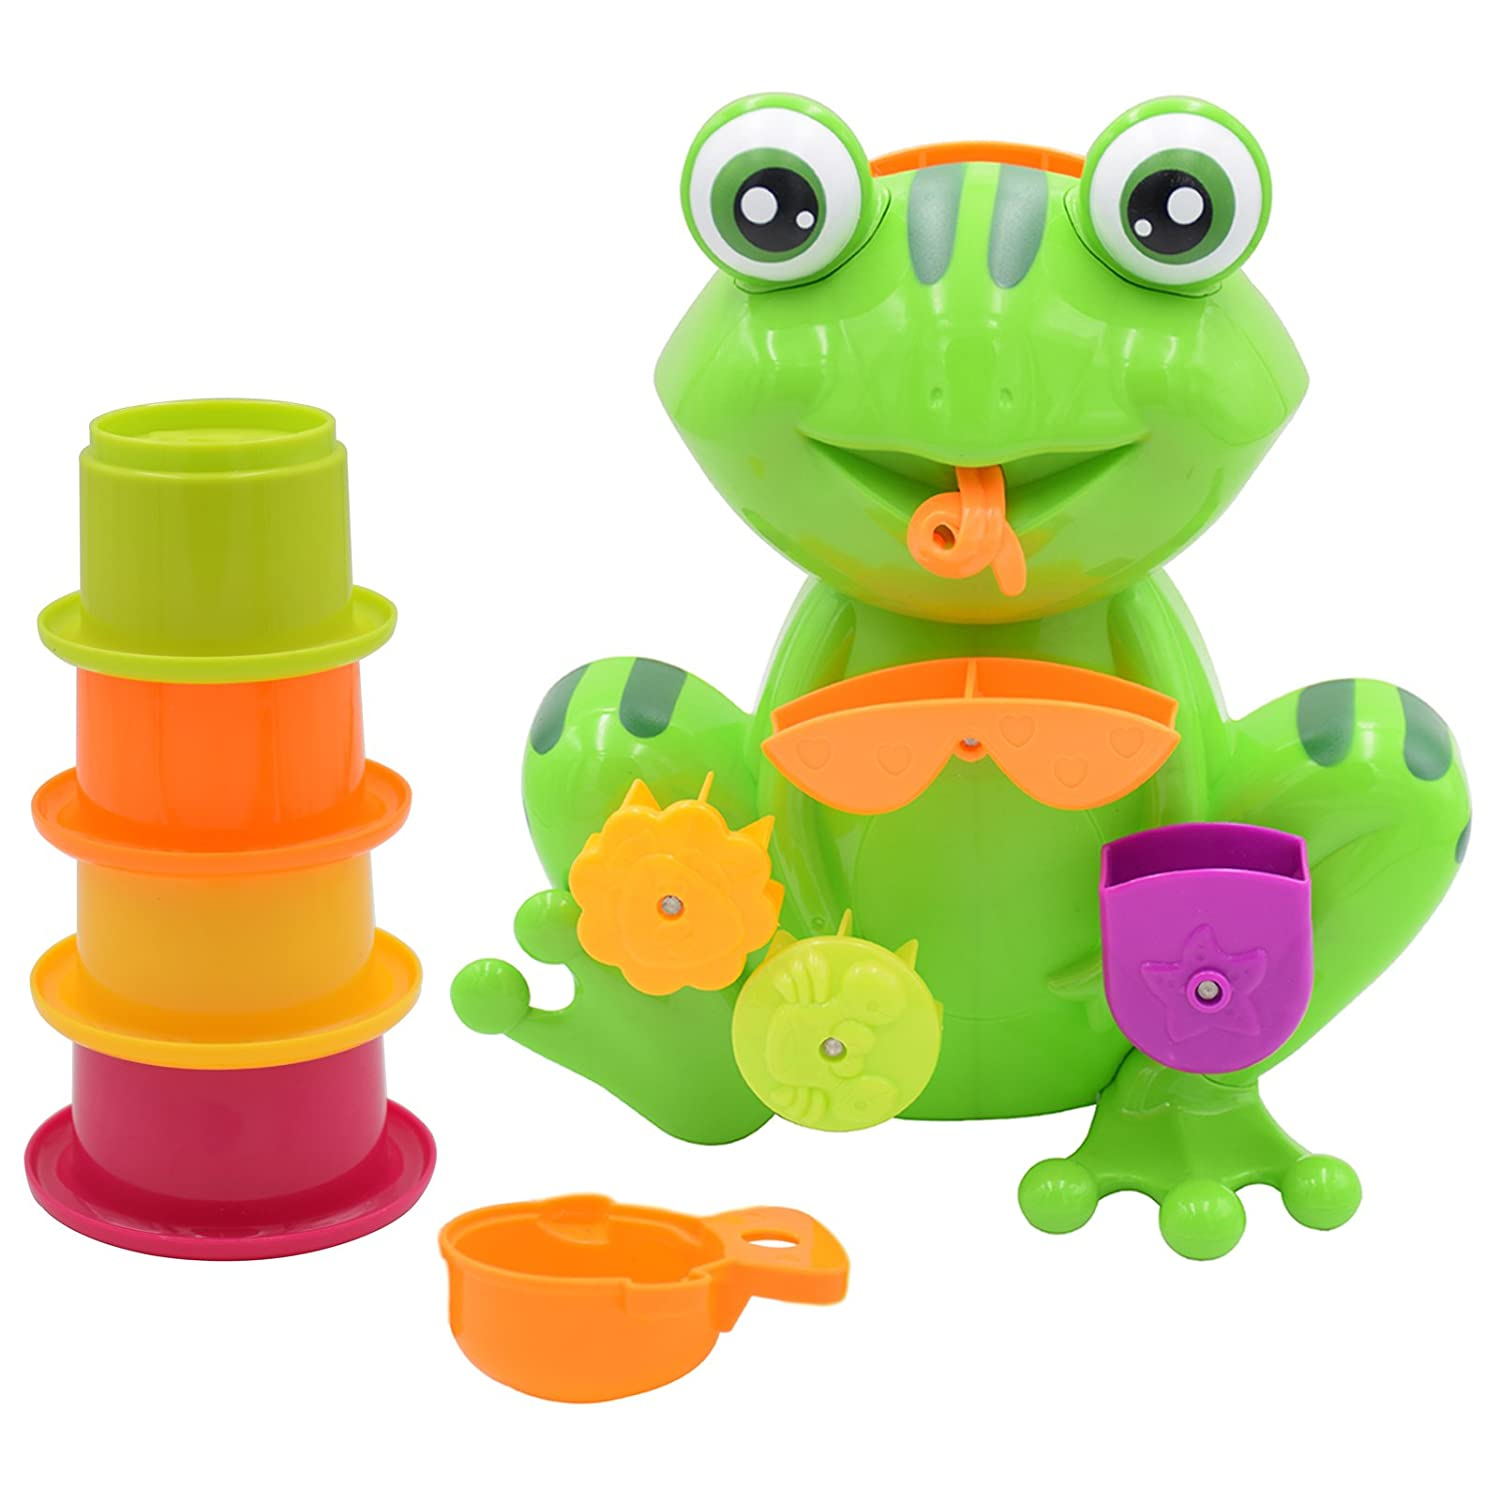 30%OFF Bath Toys for Boys and Girls Seprovider Frog Bathtime Fun